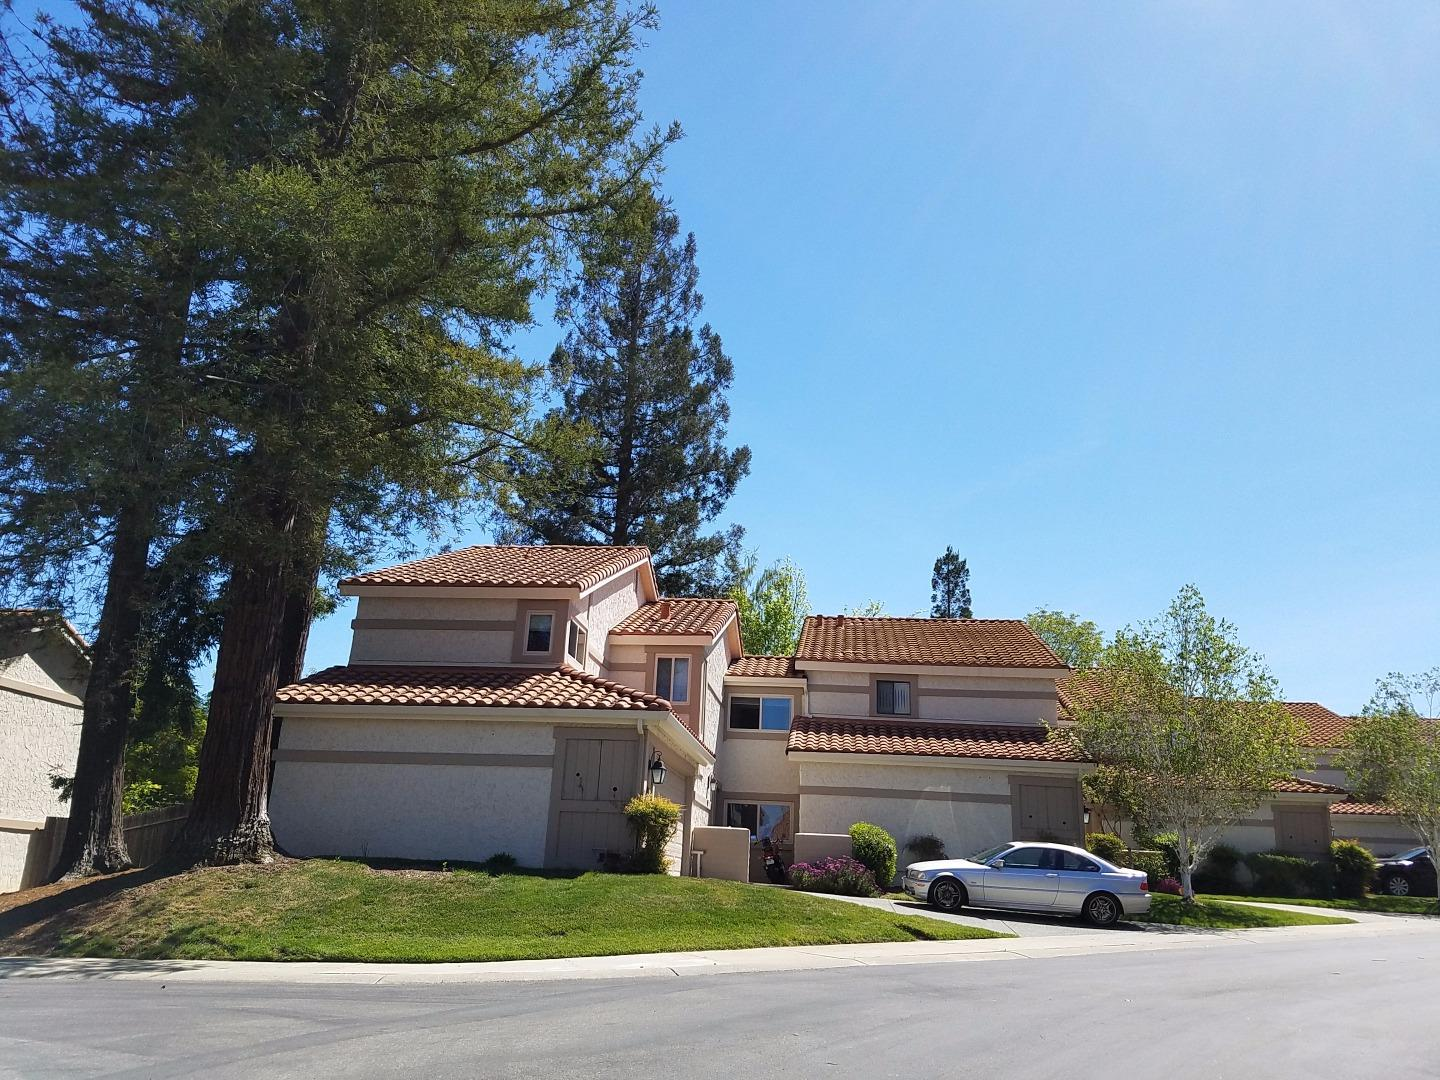 Additional photo for property listing at 108 Calle Nivel  LOS GATOS, CALIFORNIA 95032